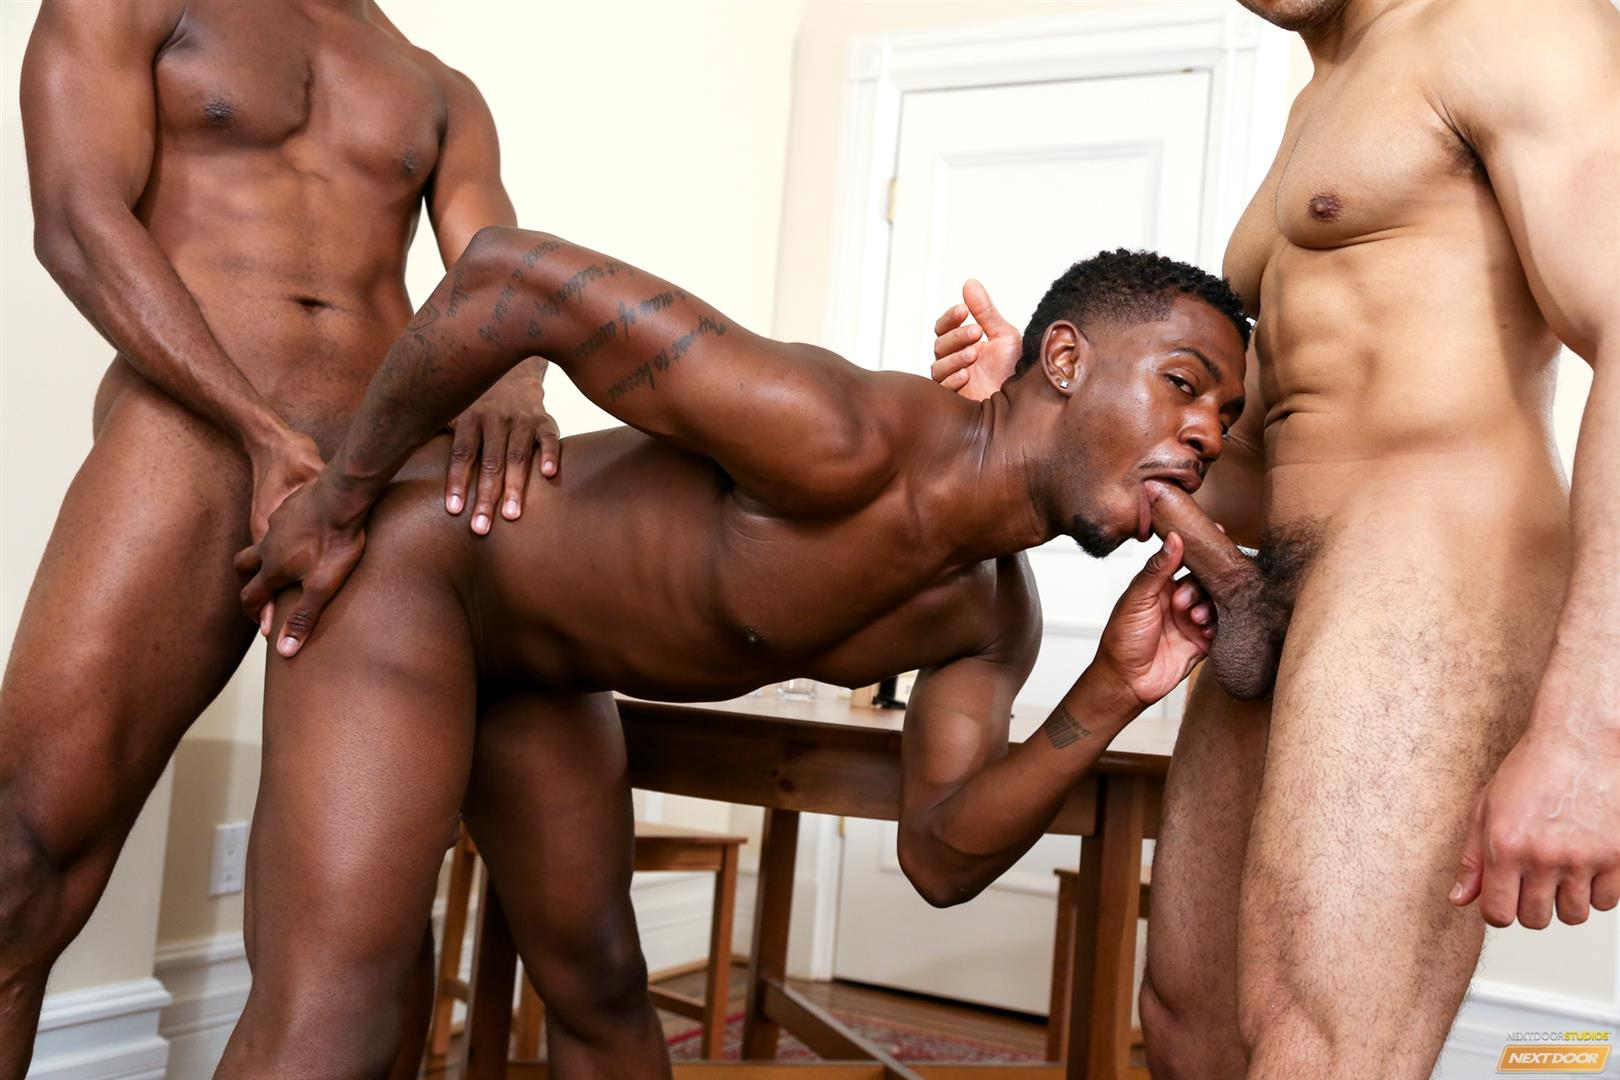 Next-Door-Ebony-Krave-Moore-and-Andre-Donovan-and-Rex-Cobra-Big-Black-Cock-Amateur-Gay-Porn-11 Three Black Guys Playing Strip Dominoes With Their Big Black Cocks